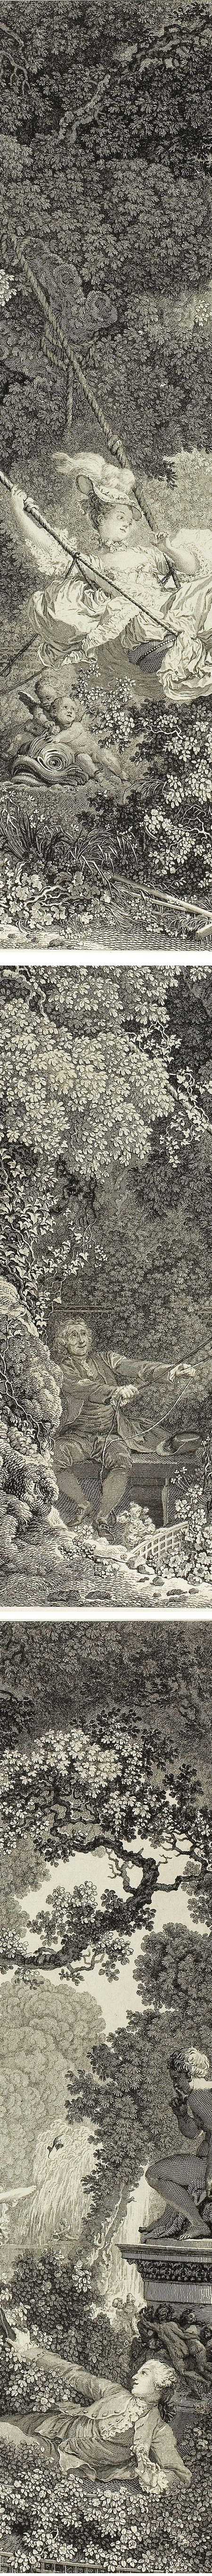 The Happy Accident of the Swing, Nicolas Delaunay, engraving after Fragonard (details)